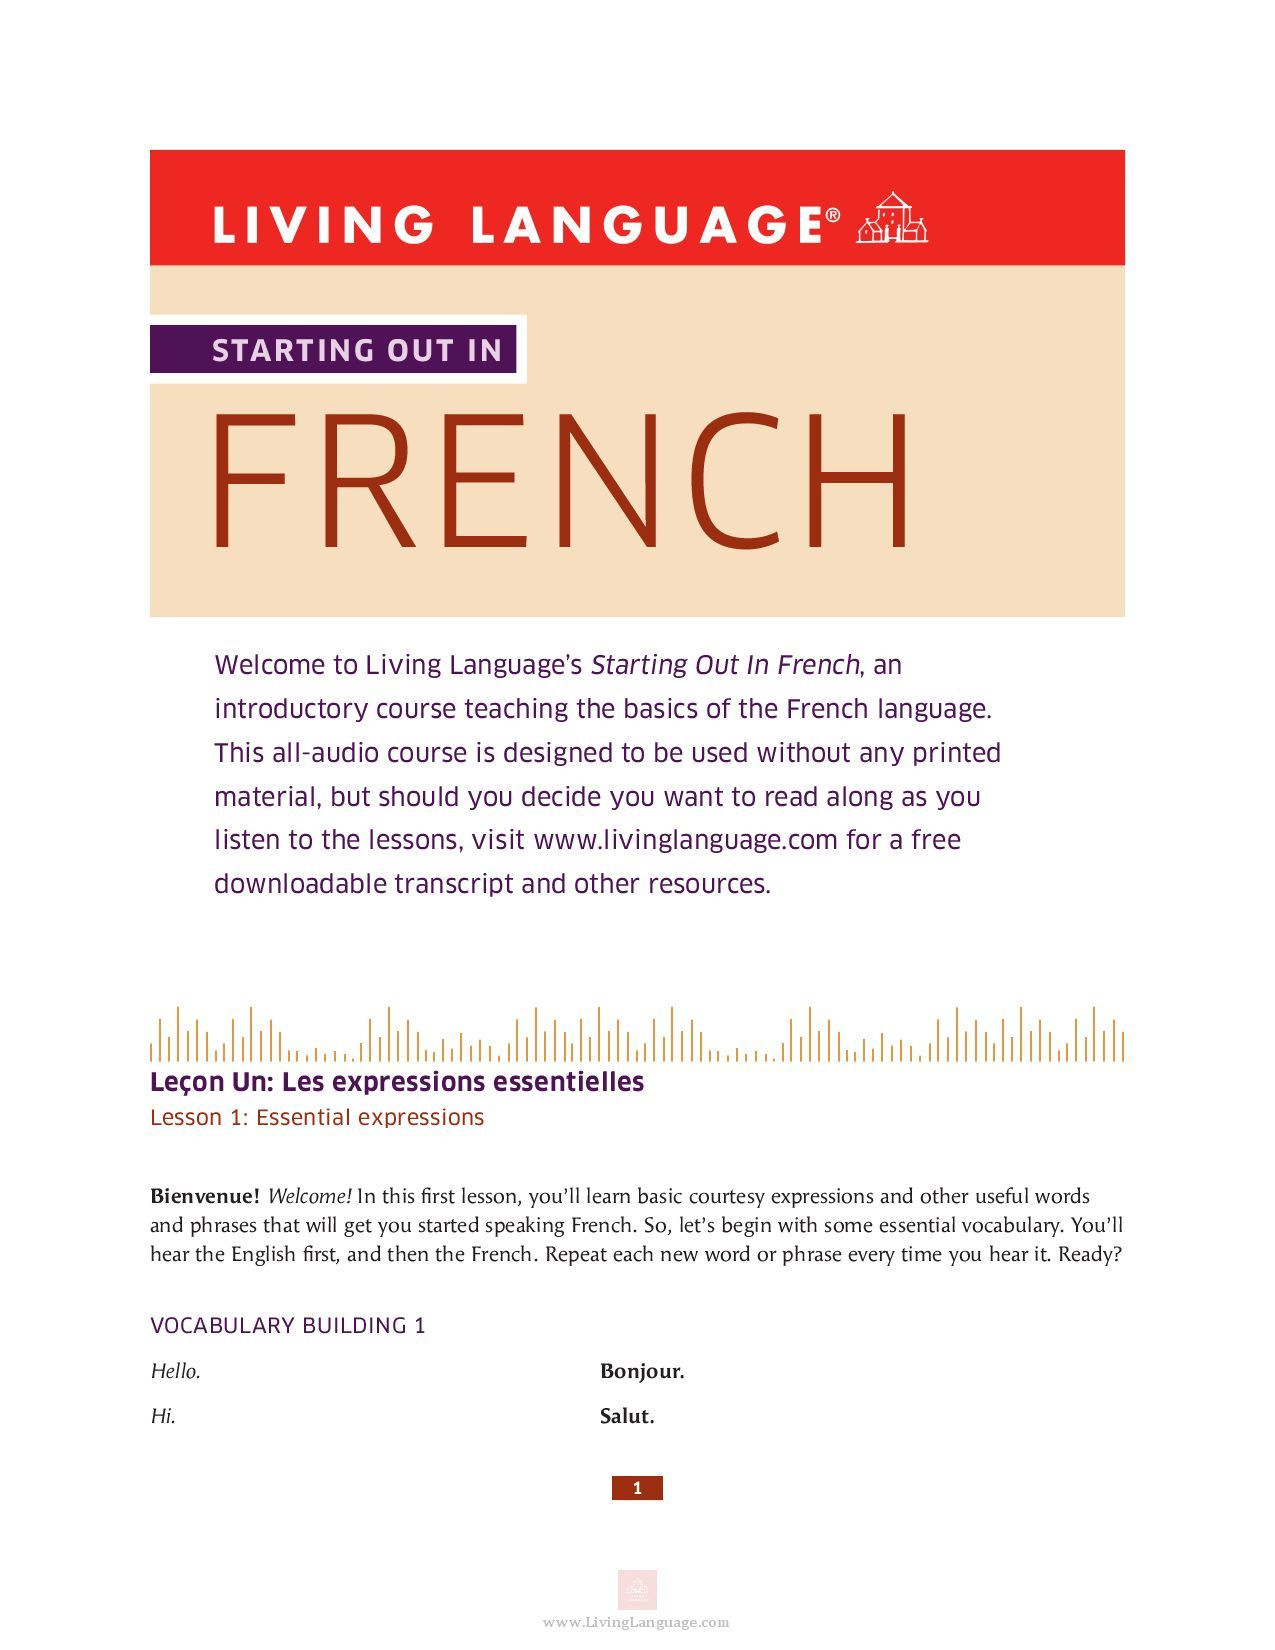 All the french you need to get started in a simple audio